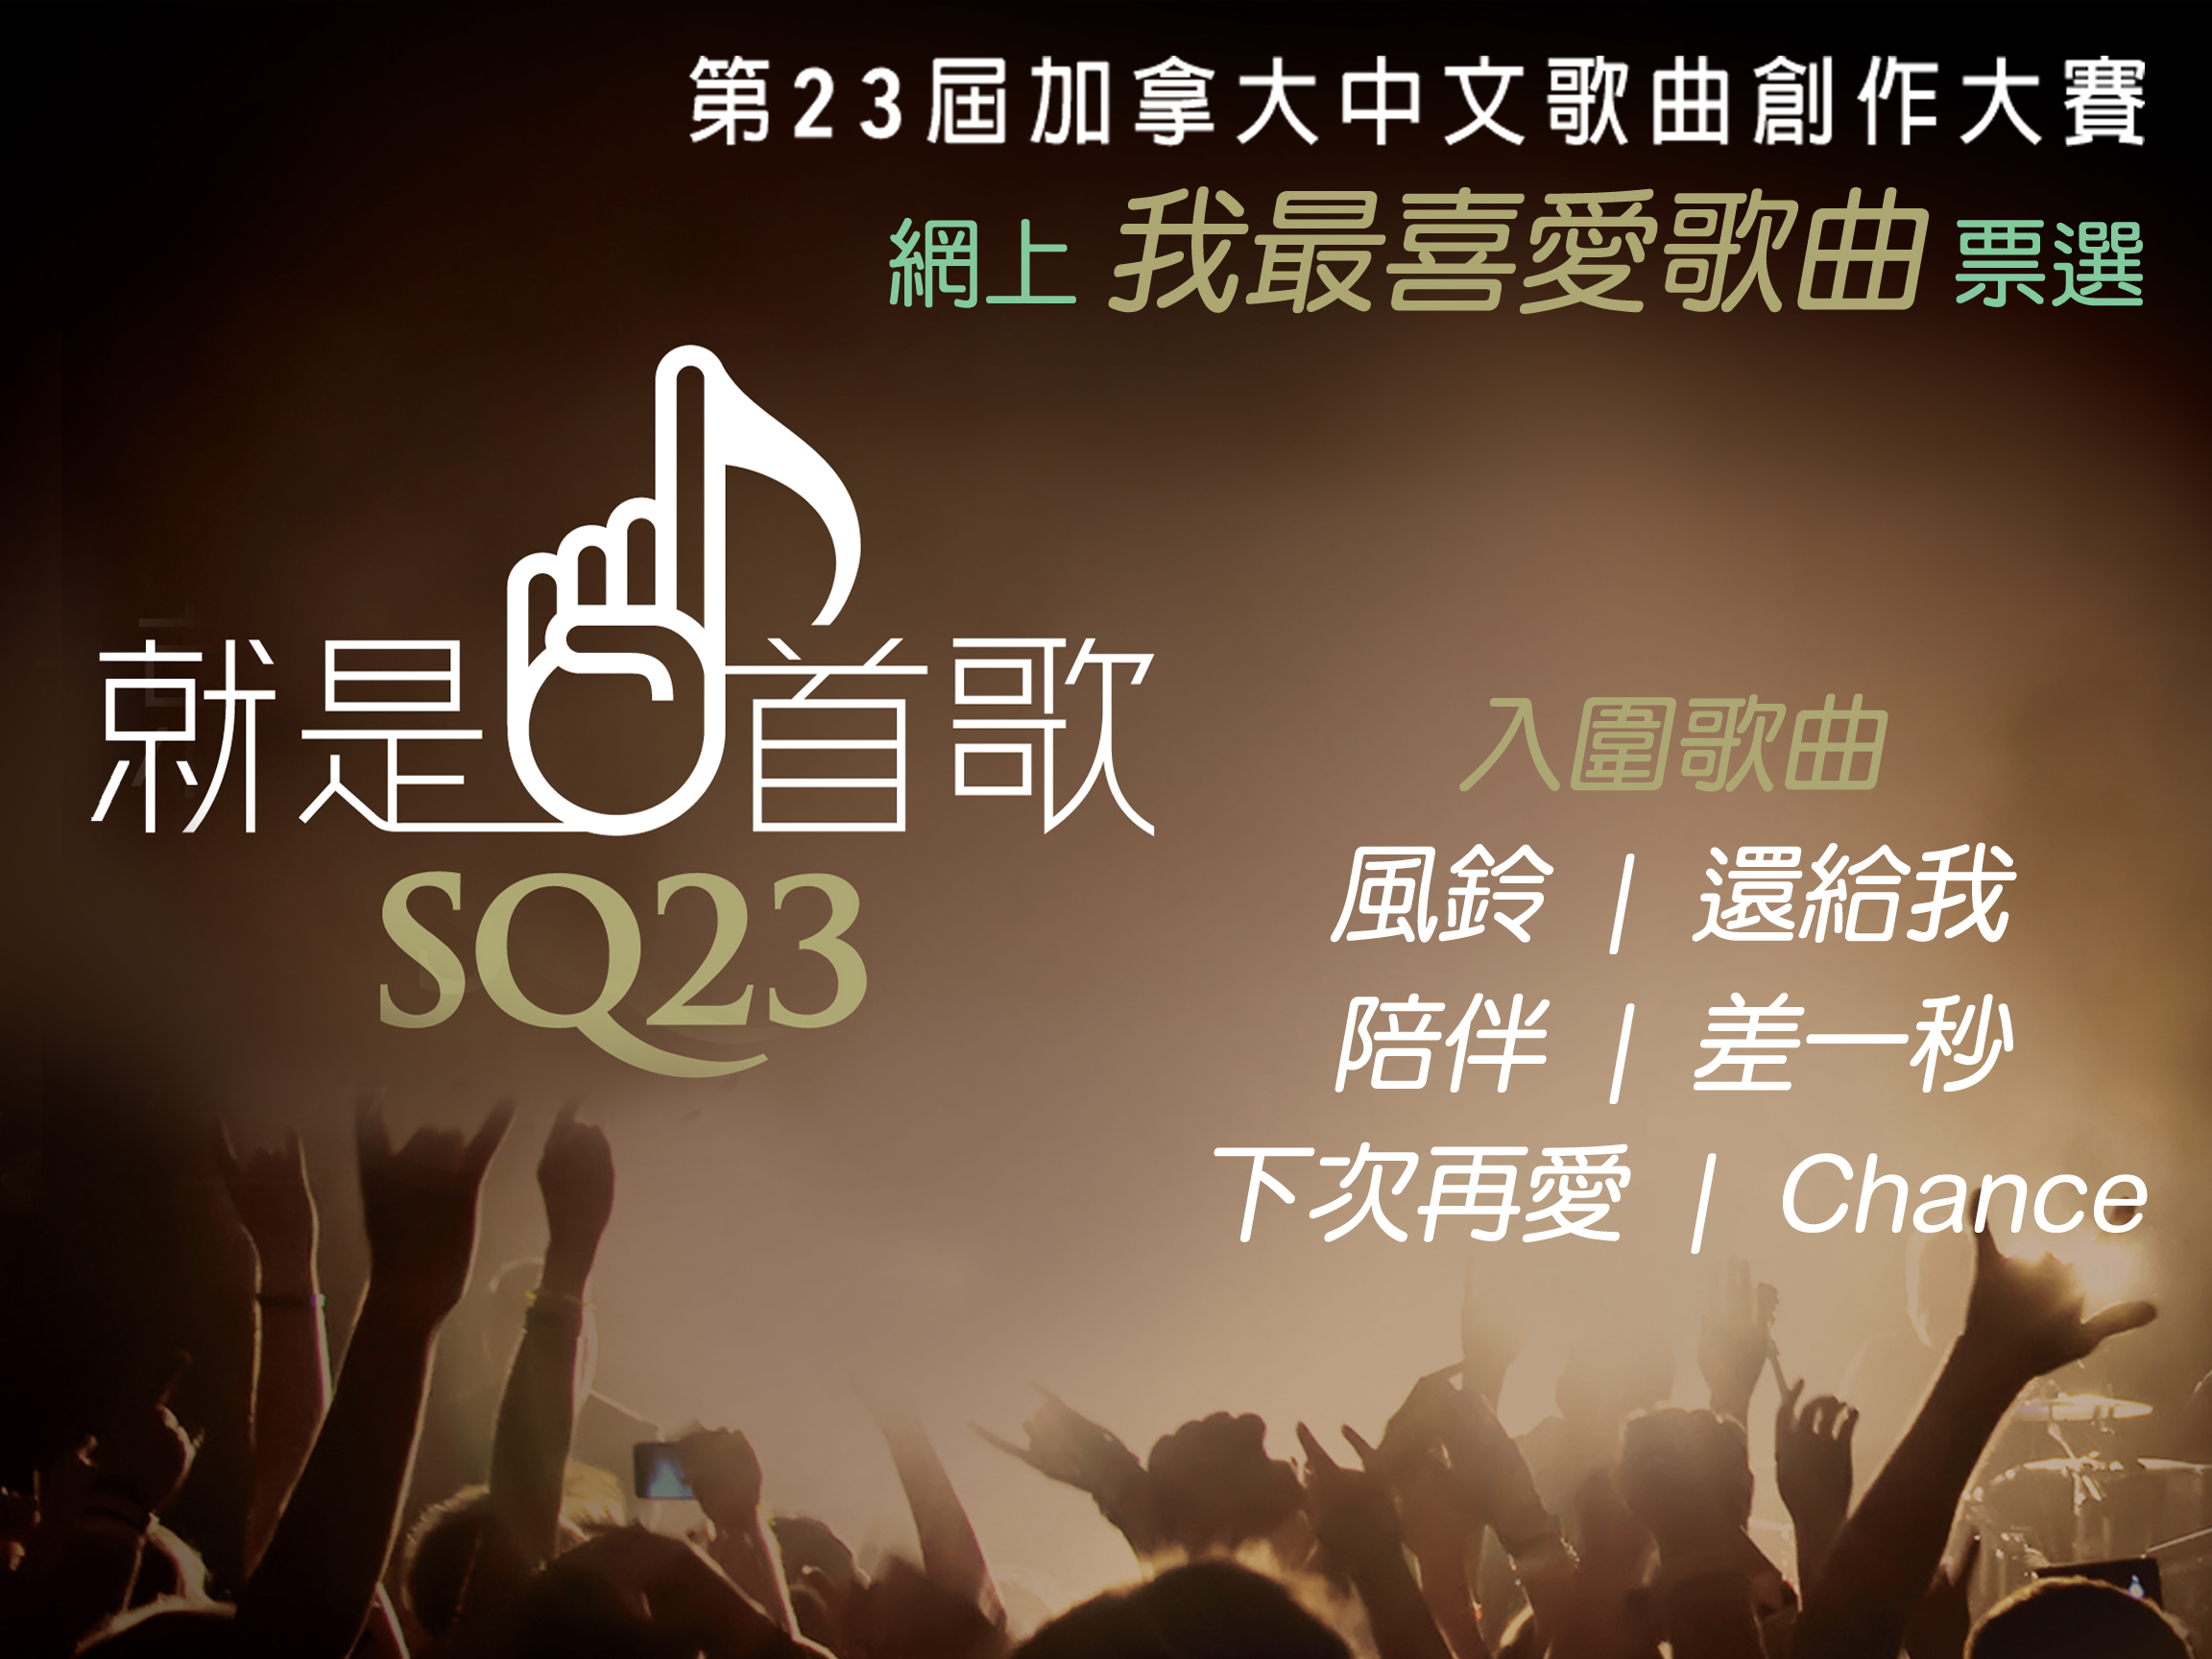 SQ23 「我最喜愛歌曲」票選 People's Choice Award [已完結]